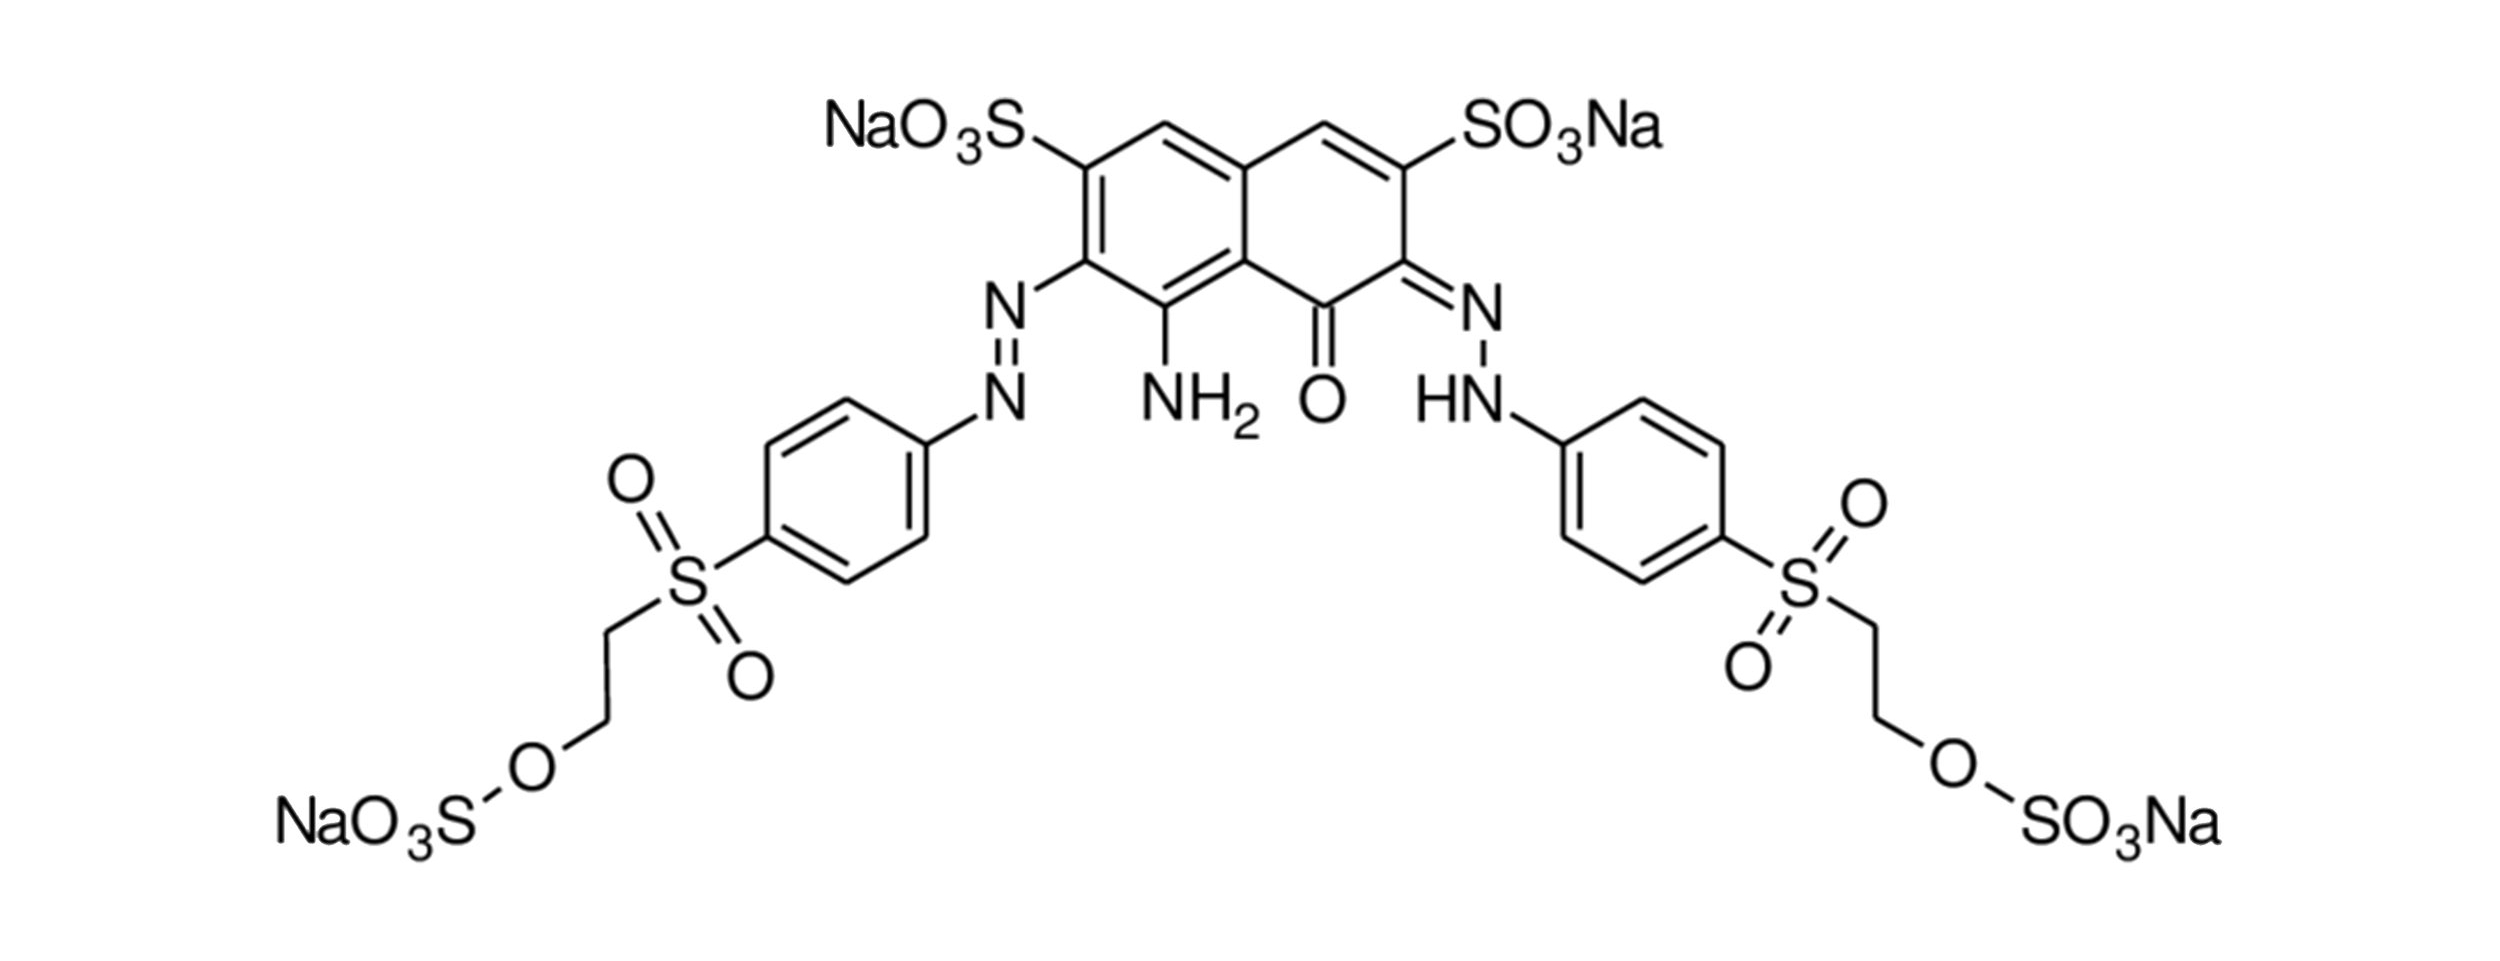 Chemical structure of azo dye Reactive Black 5